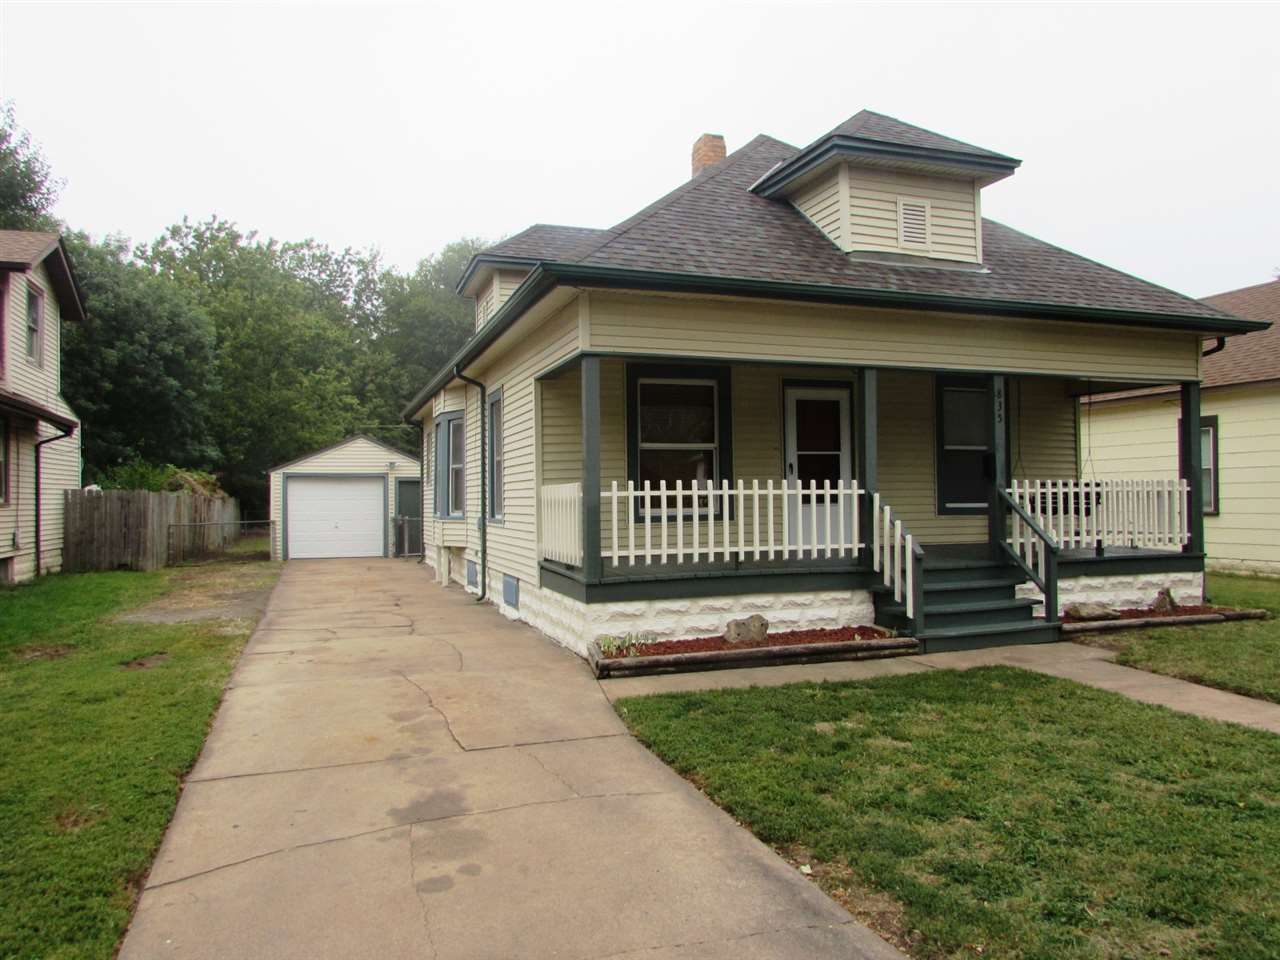 Perfect Starter Home in Move-In-Condition! This Very Nice Updated Bungalow features New Carpet and F